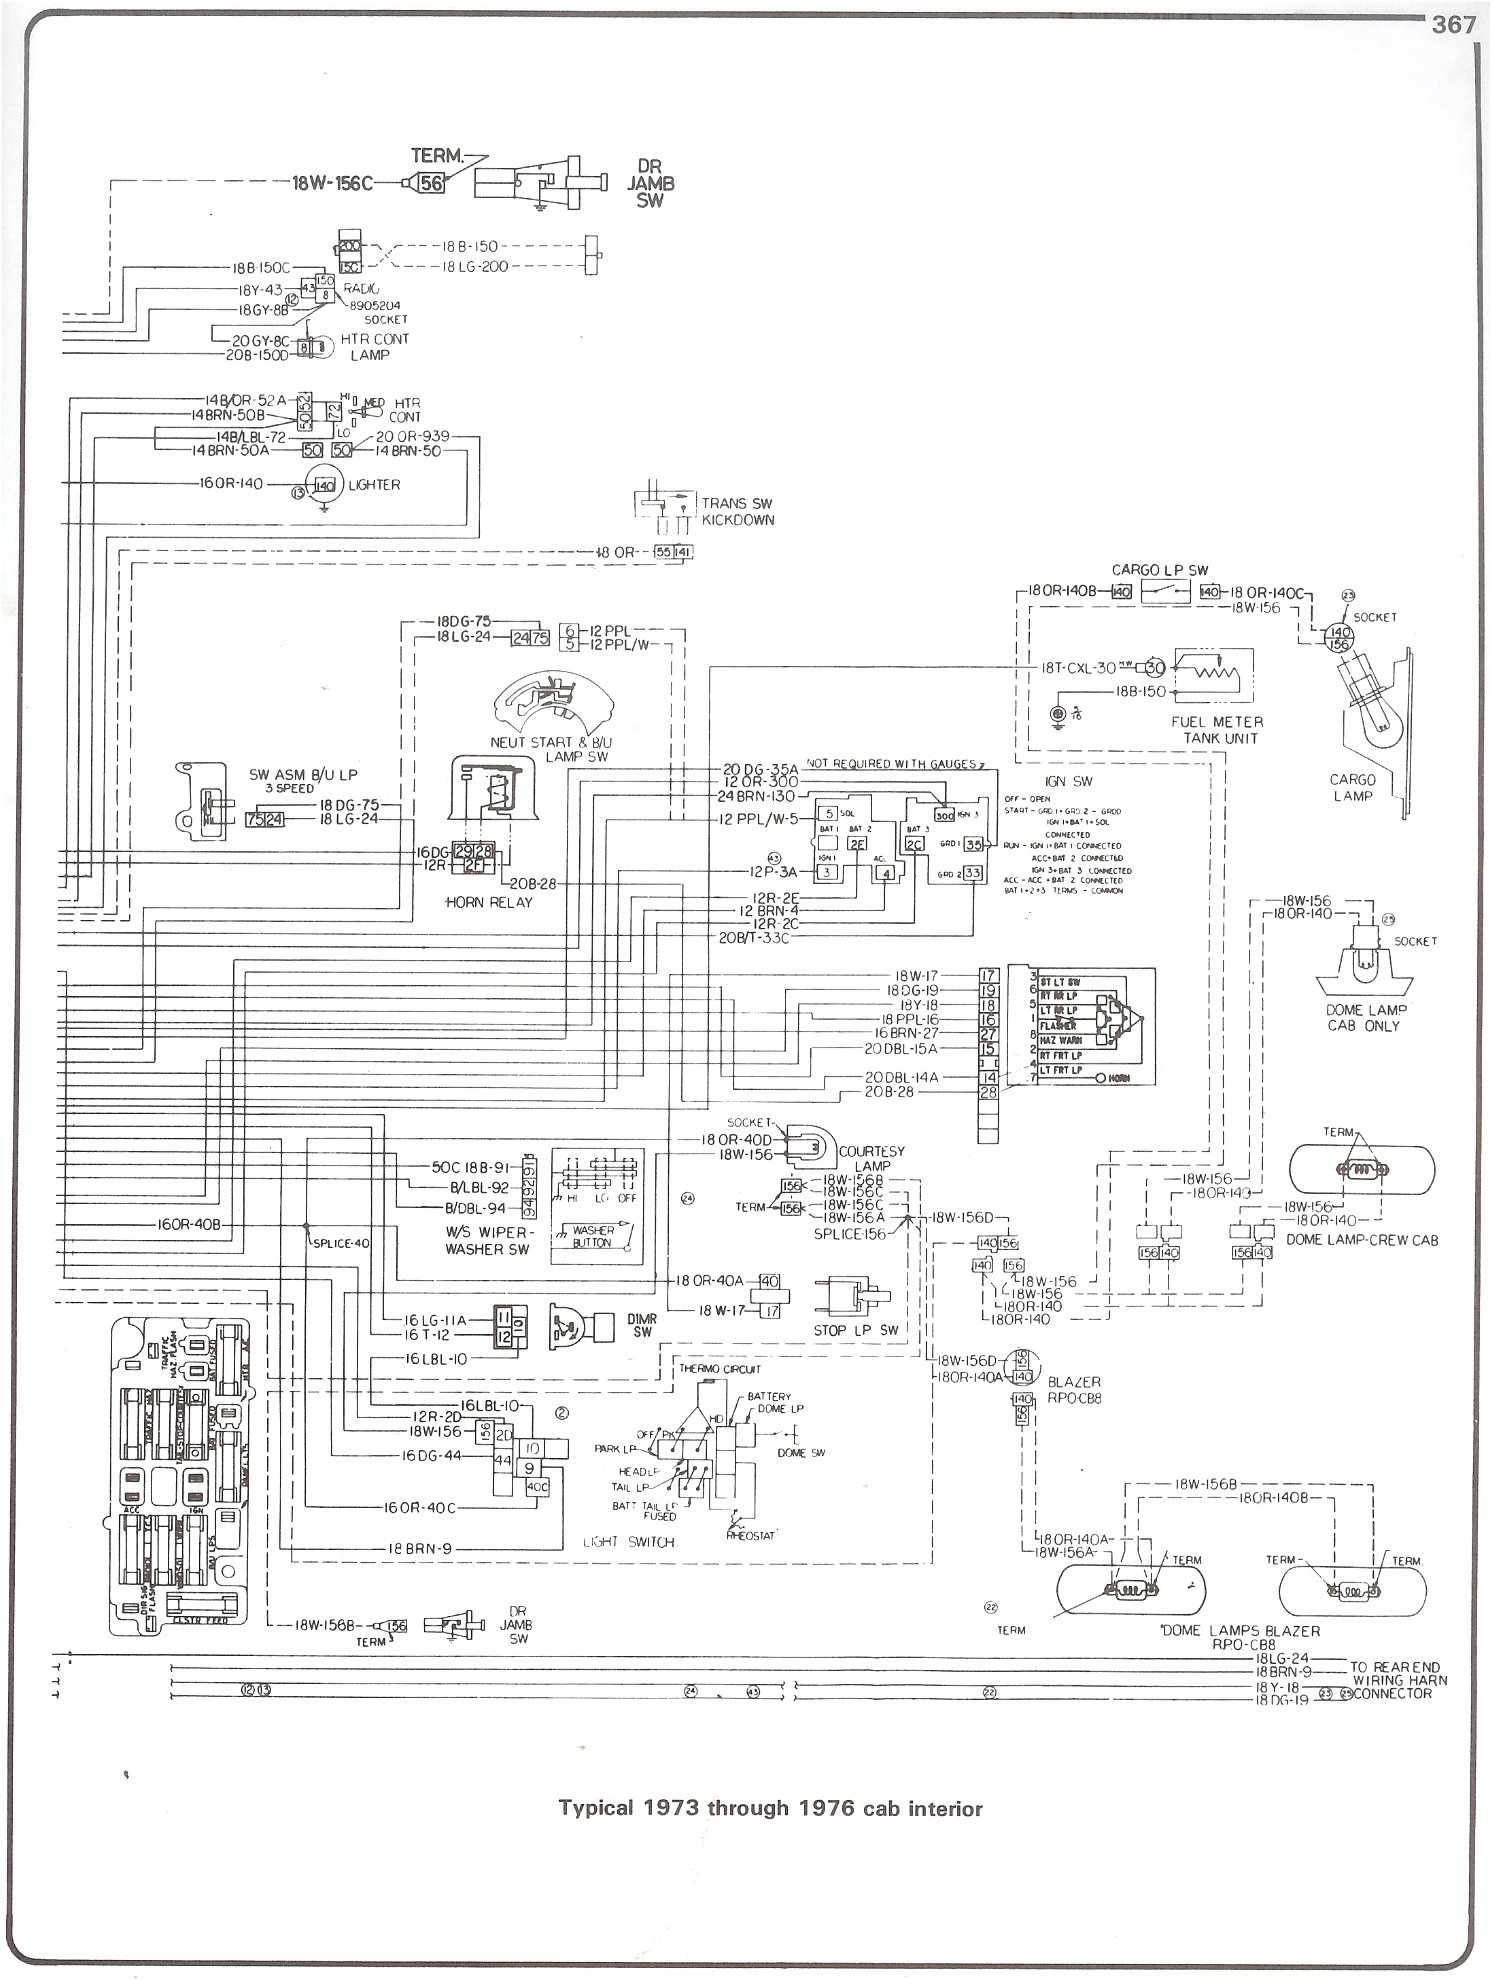 hight resolution of complete 73 87 wiring diagrams 84 chevy truck wiring diagram chevrolet wiring diagram 2008 dashboard